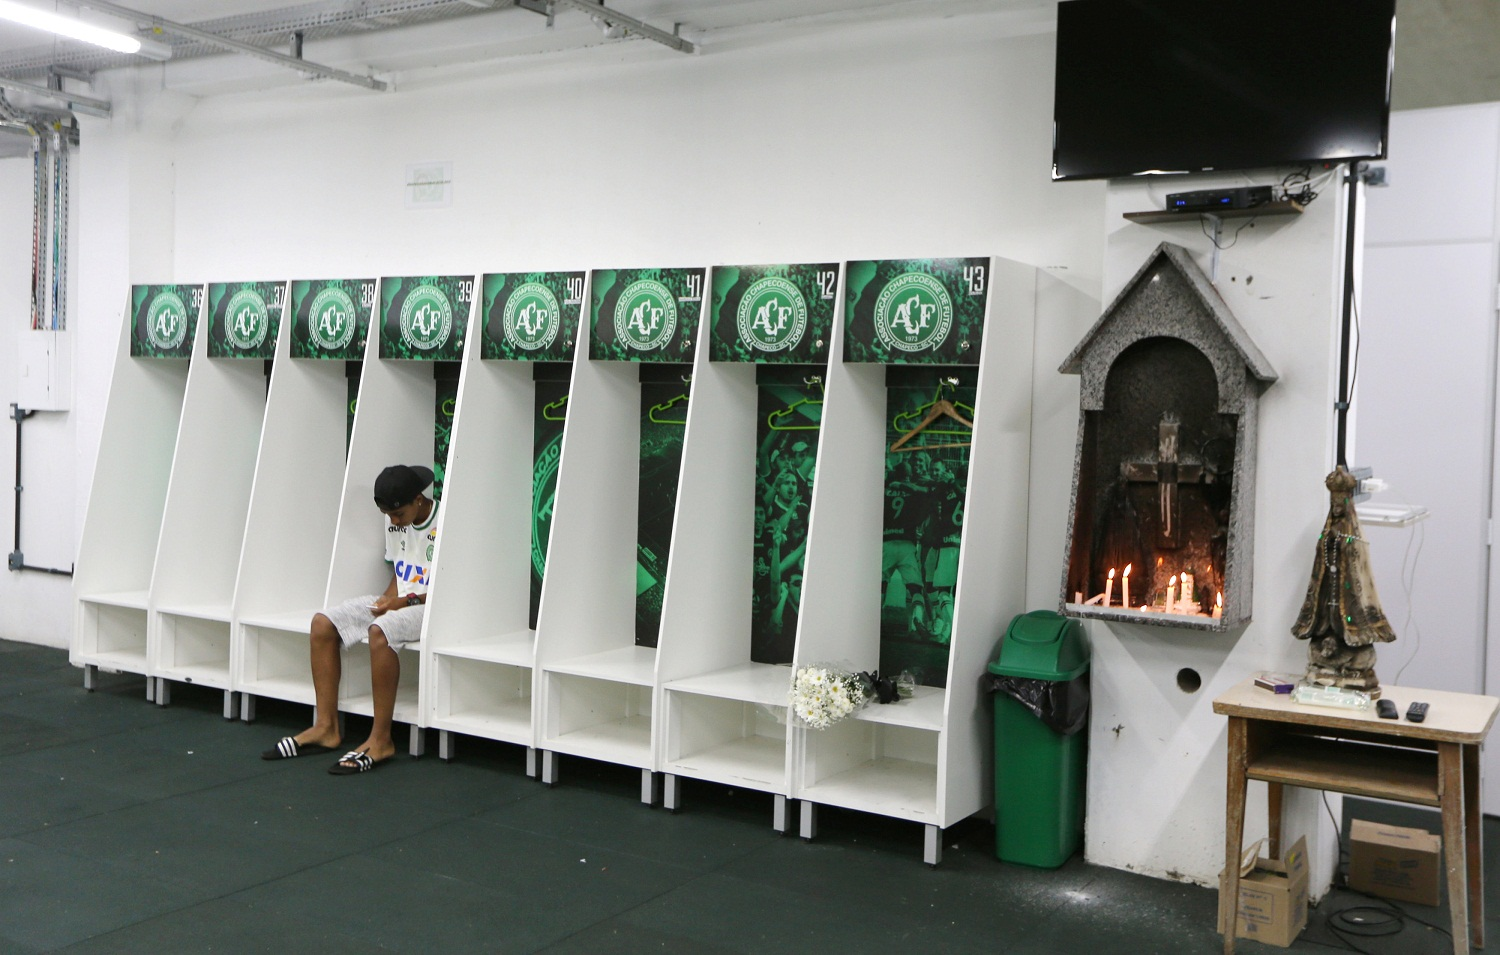 Leandro Bastos of Chapecoense's under-15 soccer team sits inside the team's locker room at the Arena Conda stadium in Chapeco, Brazil, November 29, 2016. REUTERS/Paulo Whitaker